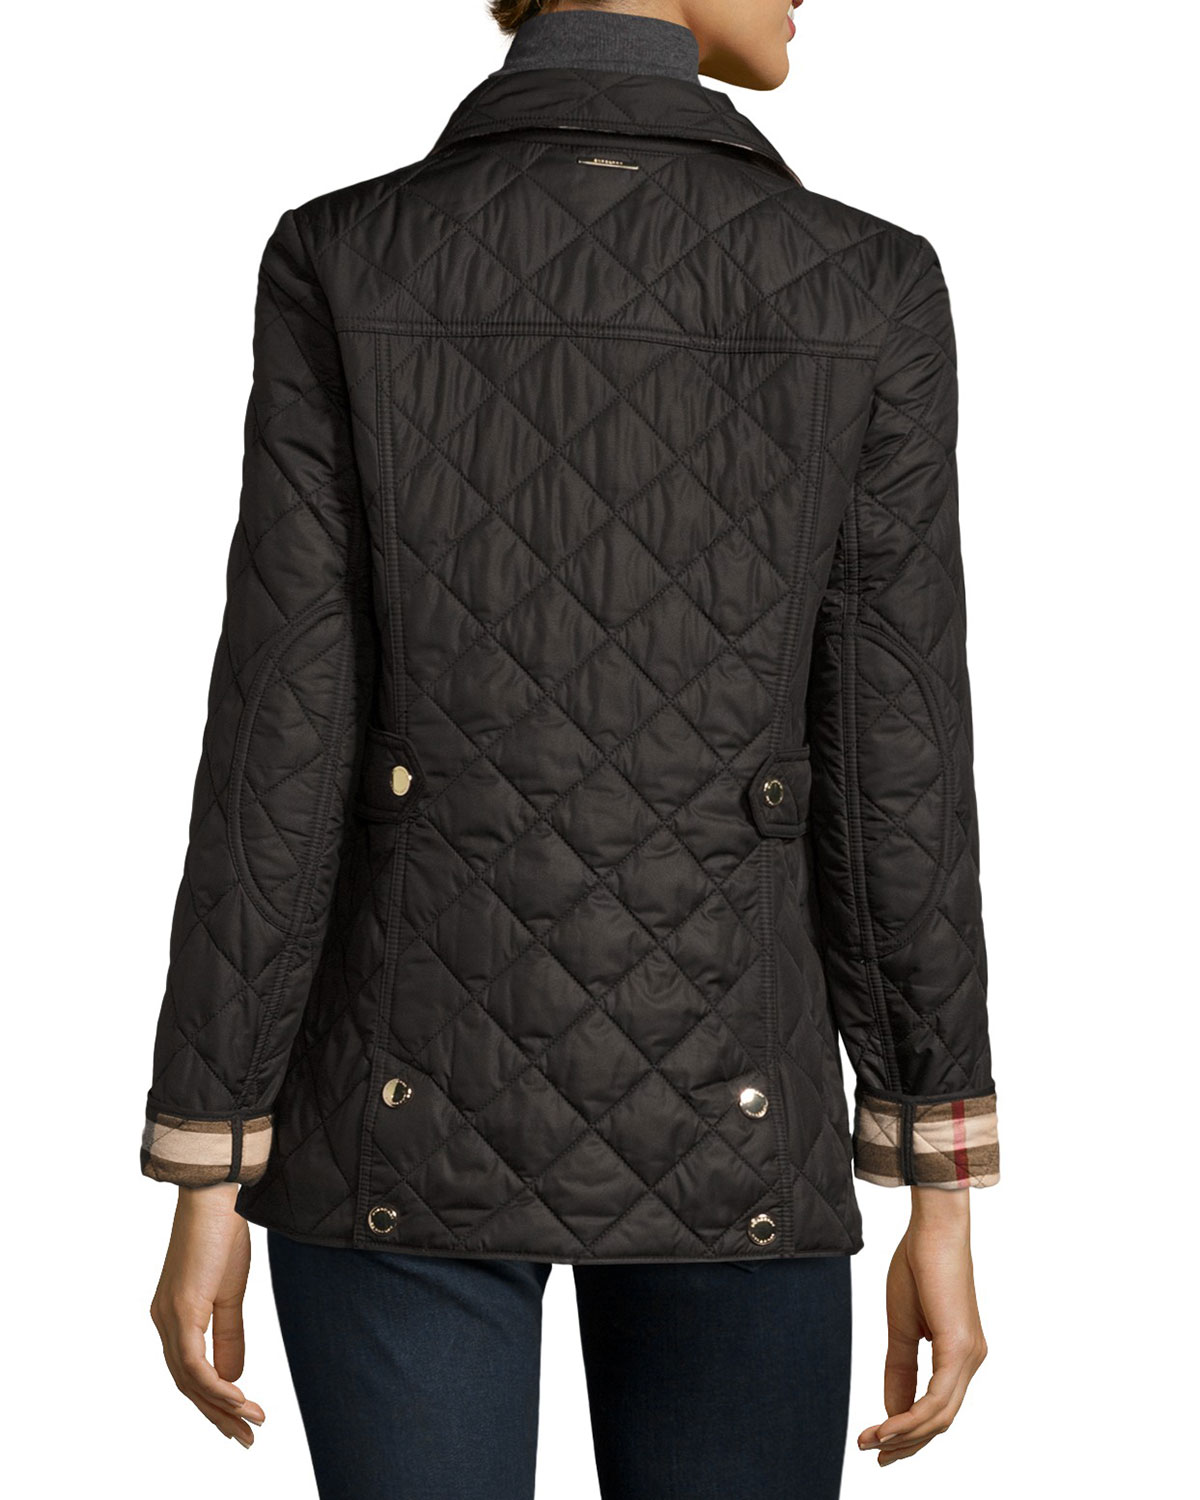 chalk jackets white in product quilt quilted brit burberry s fitted gallery women jacket lyst clothing